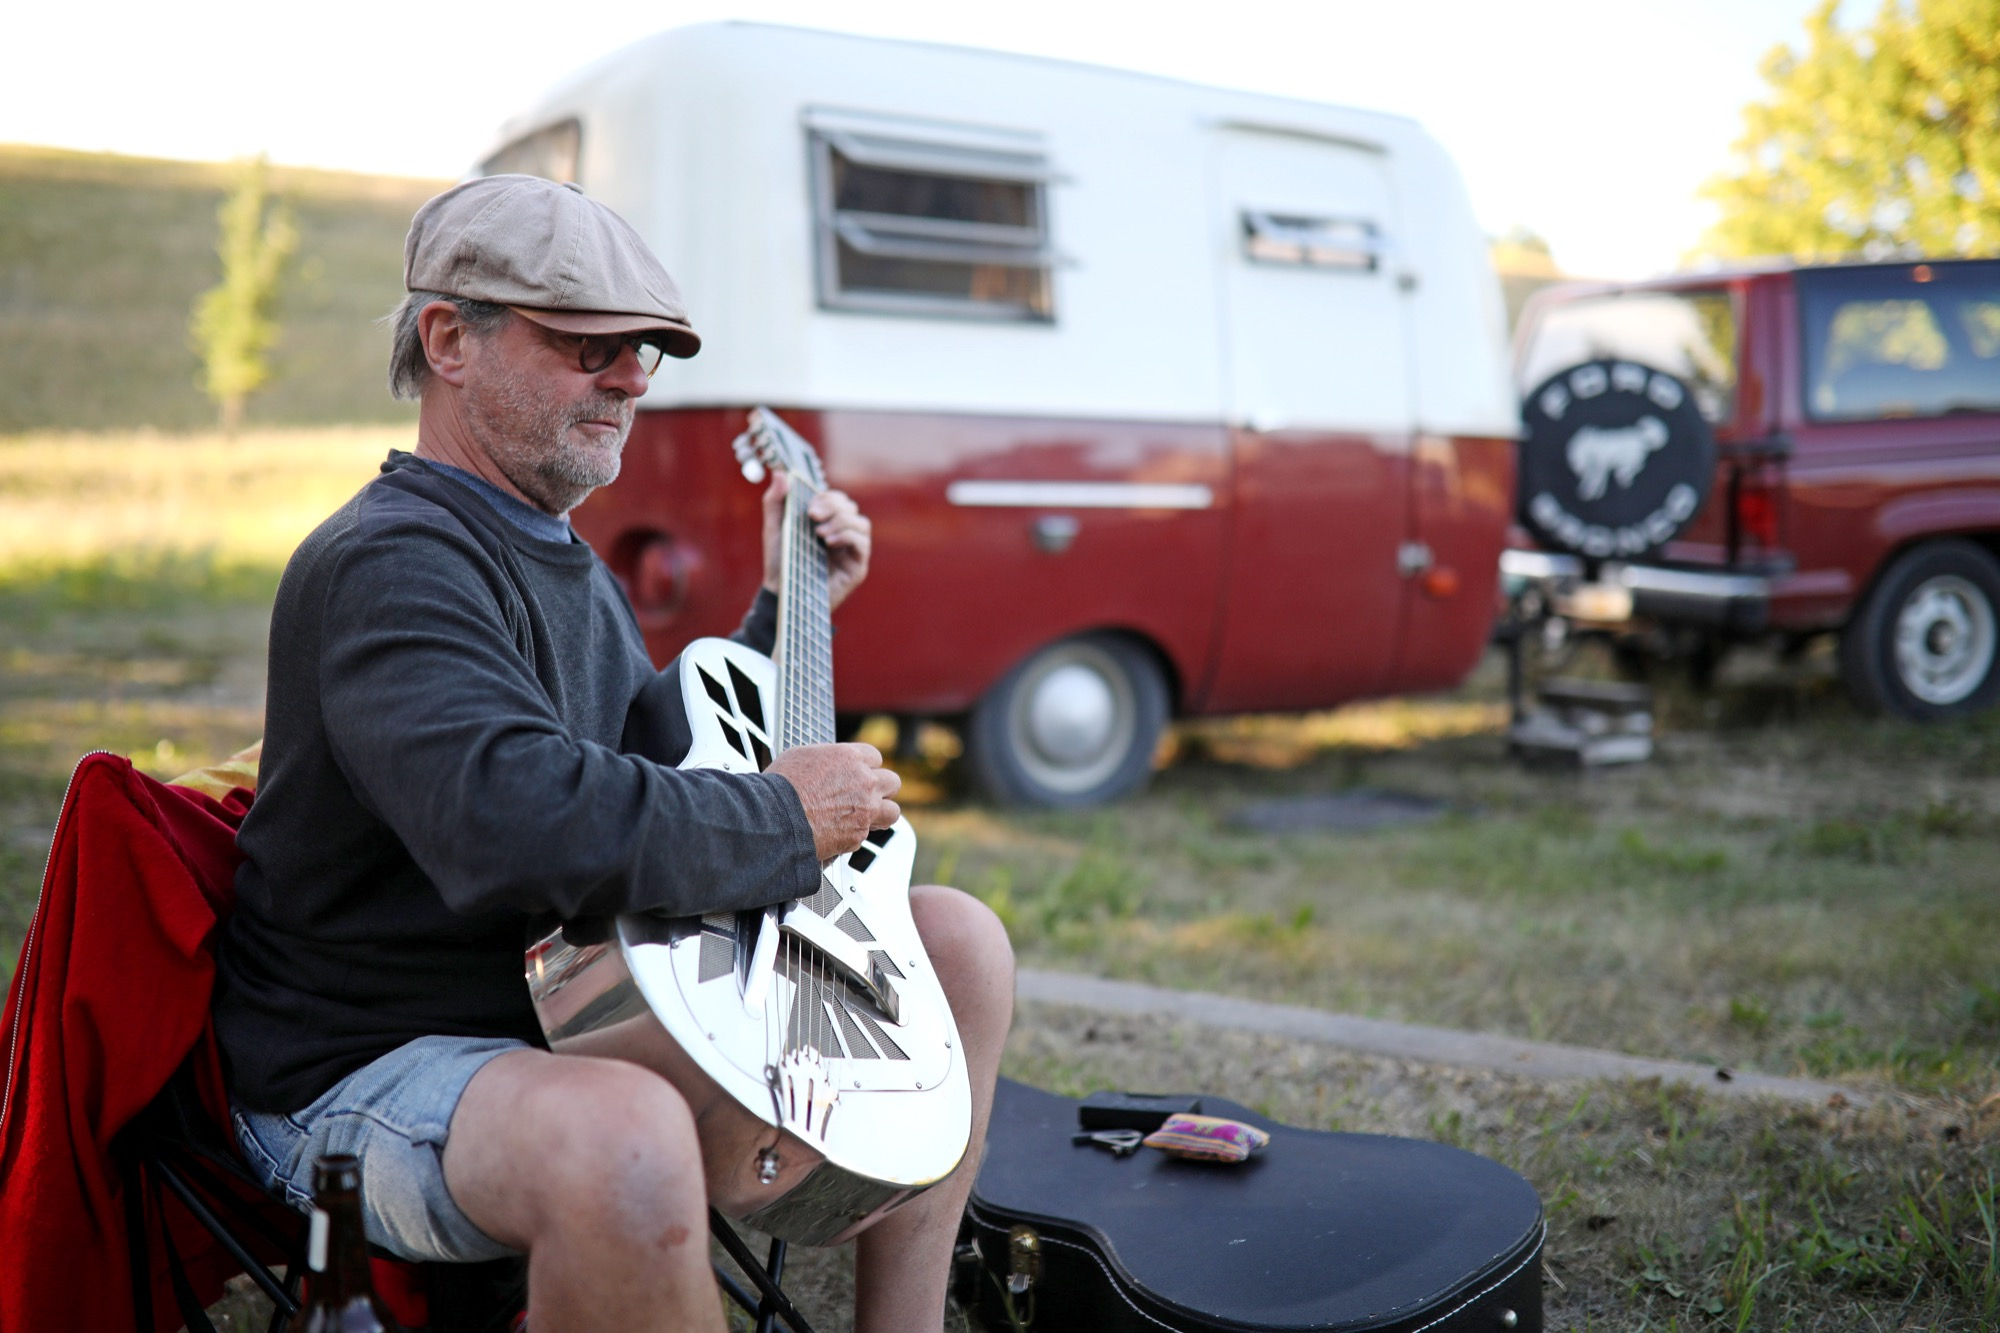 Jim Houston of Vancouver plays guitar outside his 1972 Boler camper while parked for the night at Grand Valley Campground on Tuesday evening.